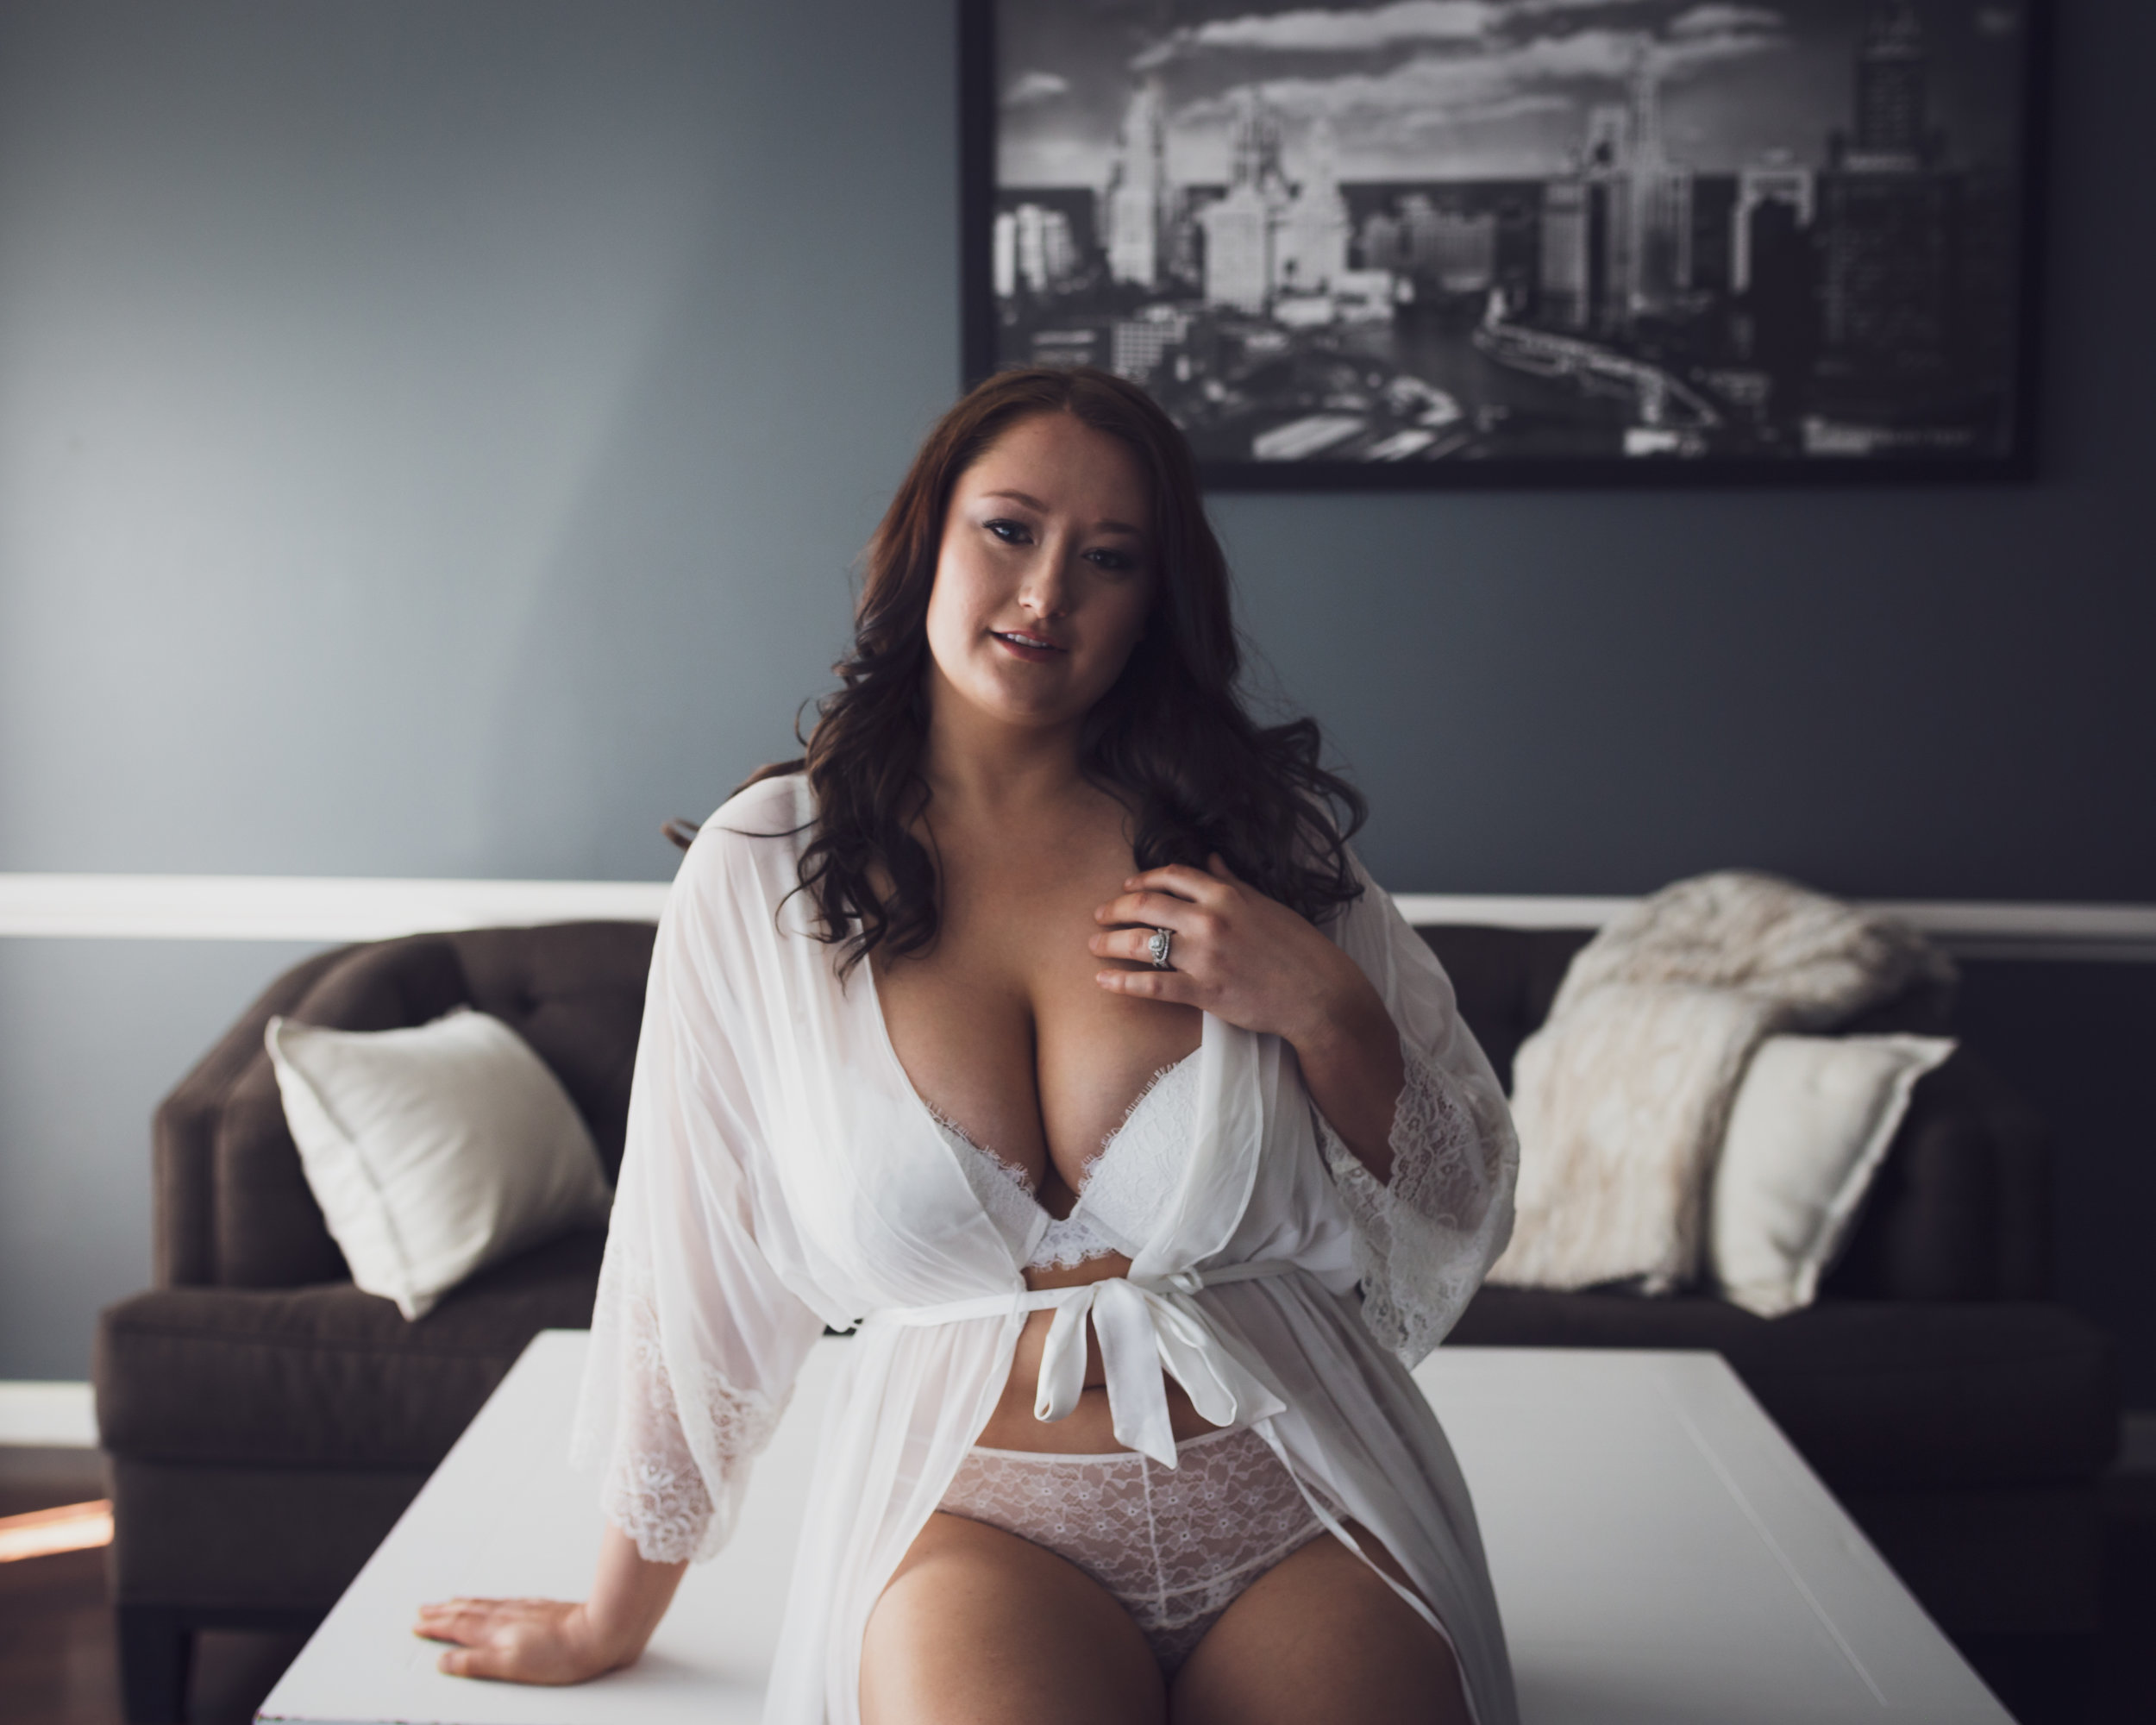 Nine19 Photography Raleigh NC Boudoir Photographer-6018.jpg